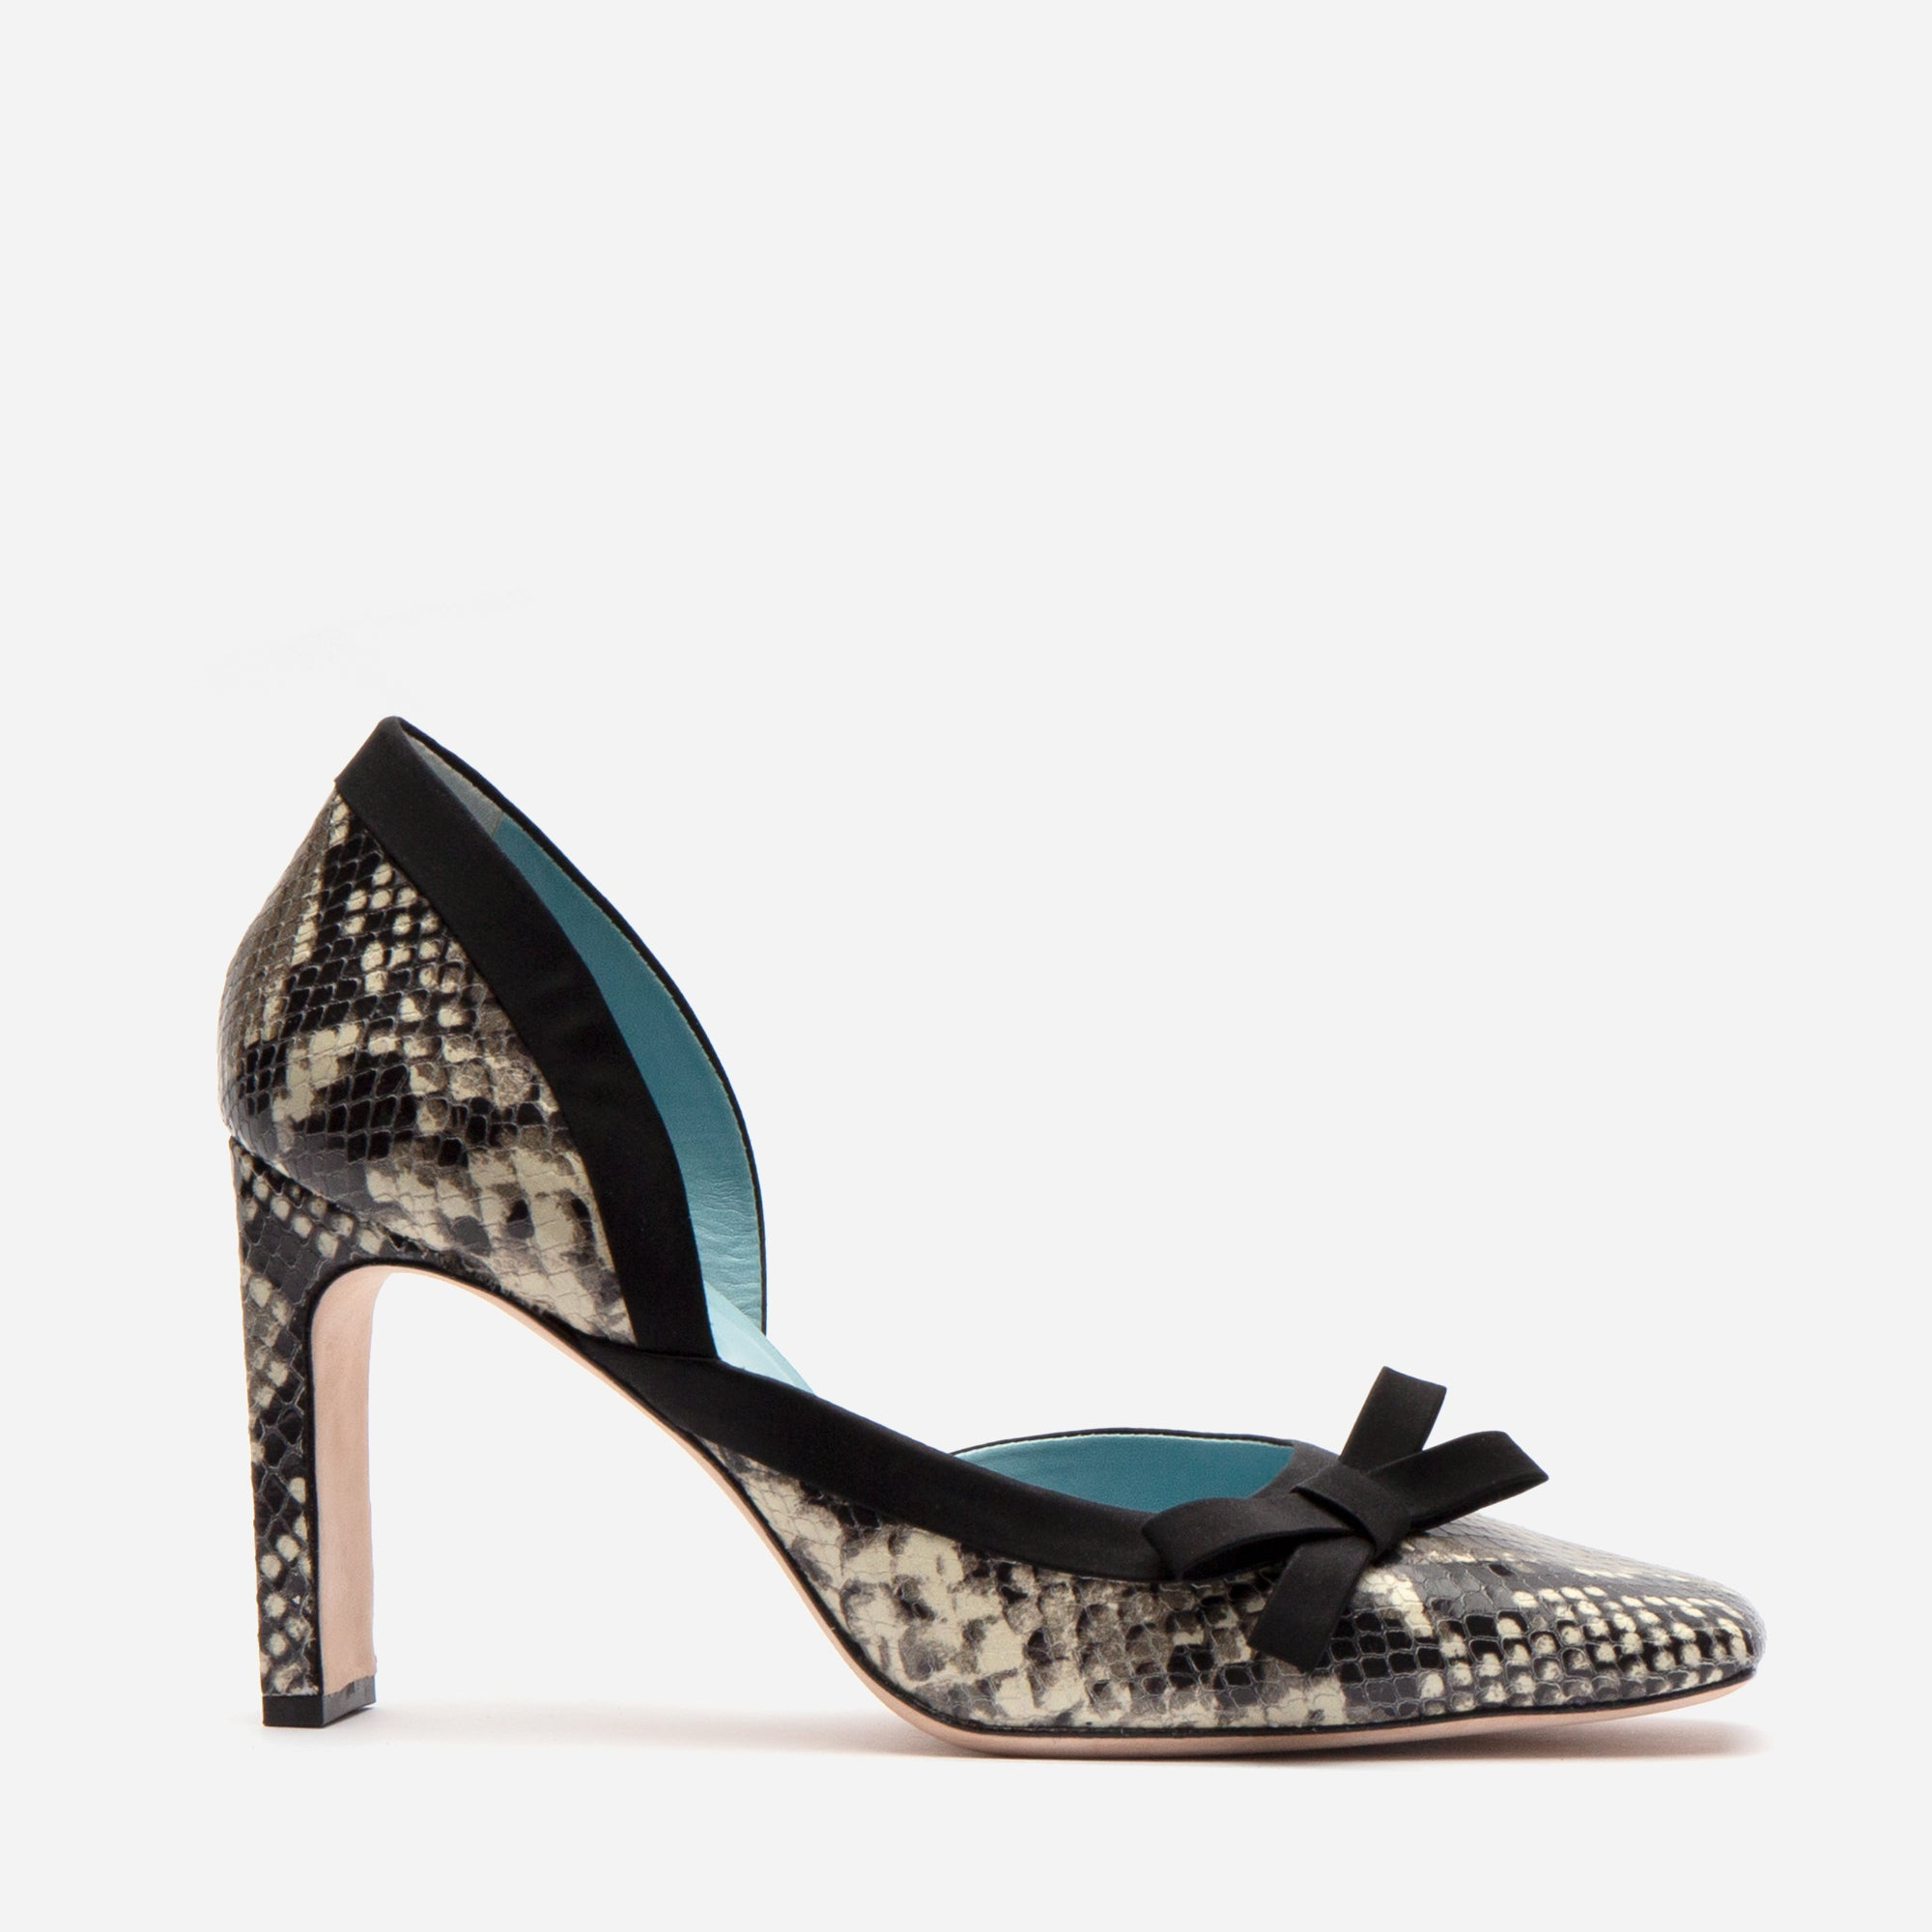 Sinclair Leather Heels Roccia Snake Black